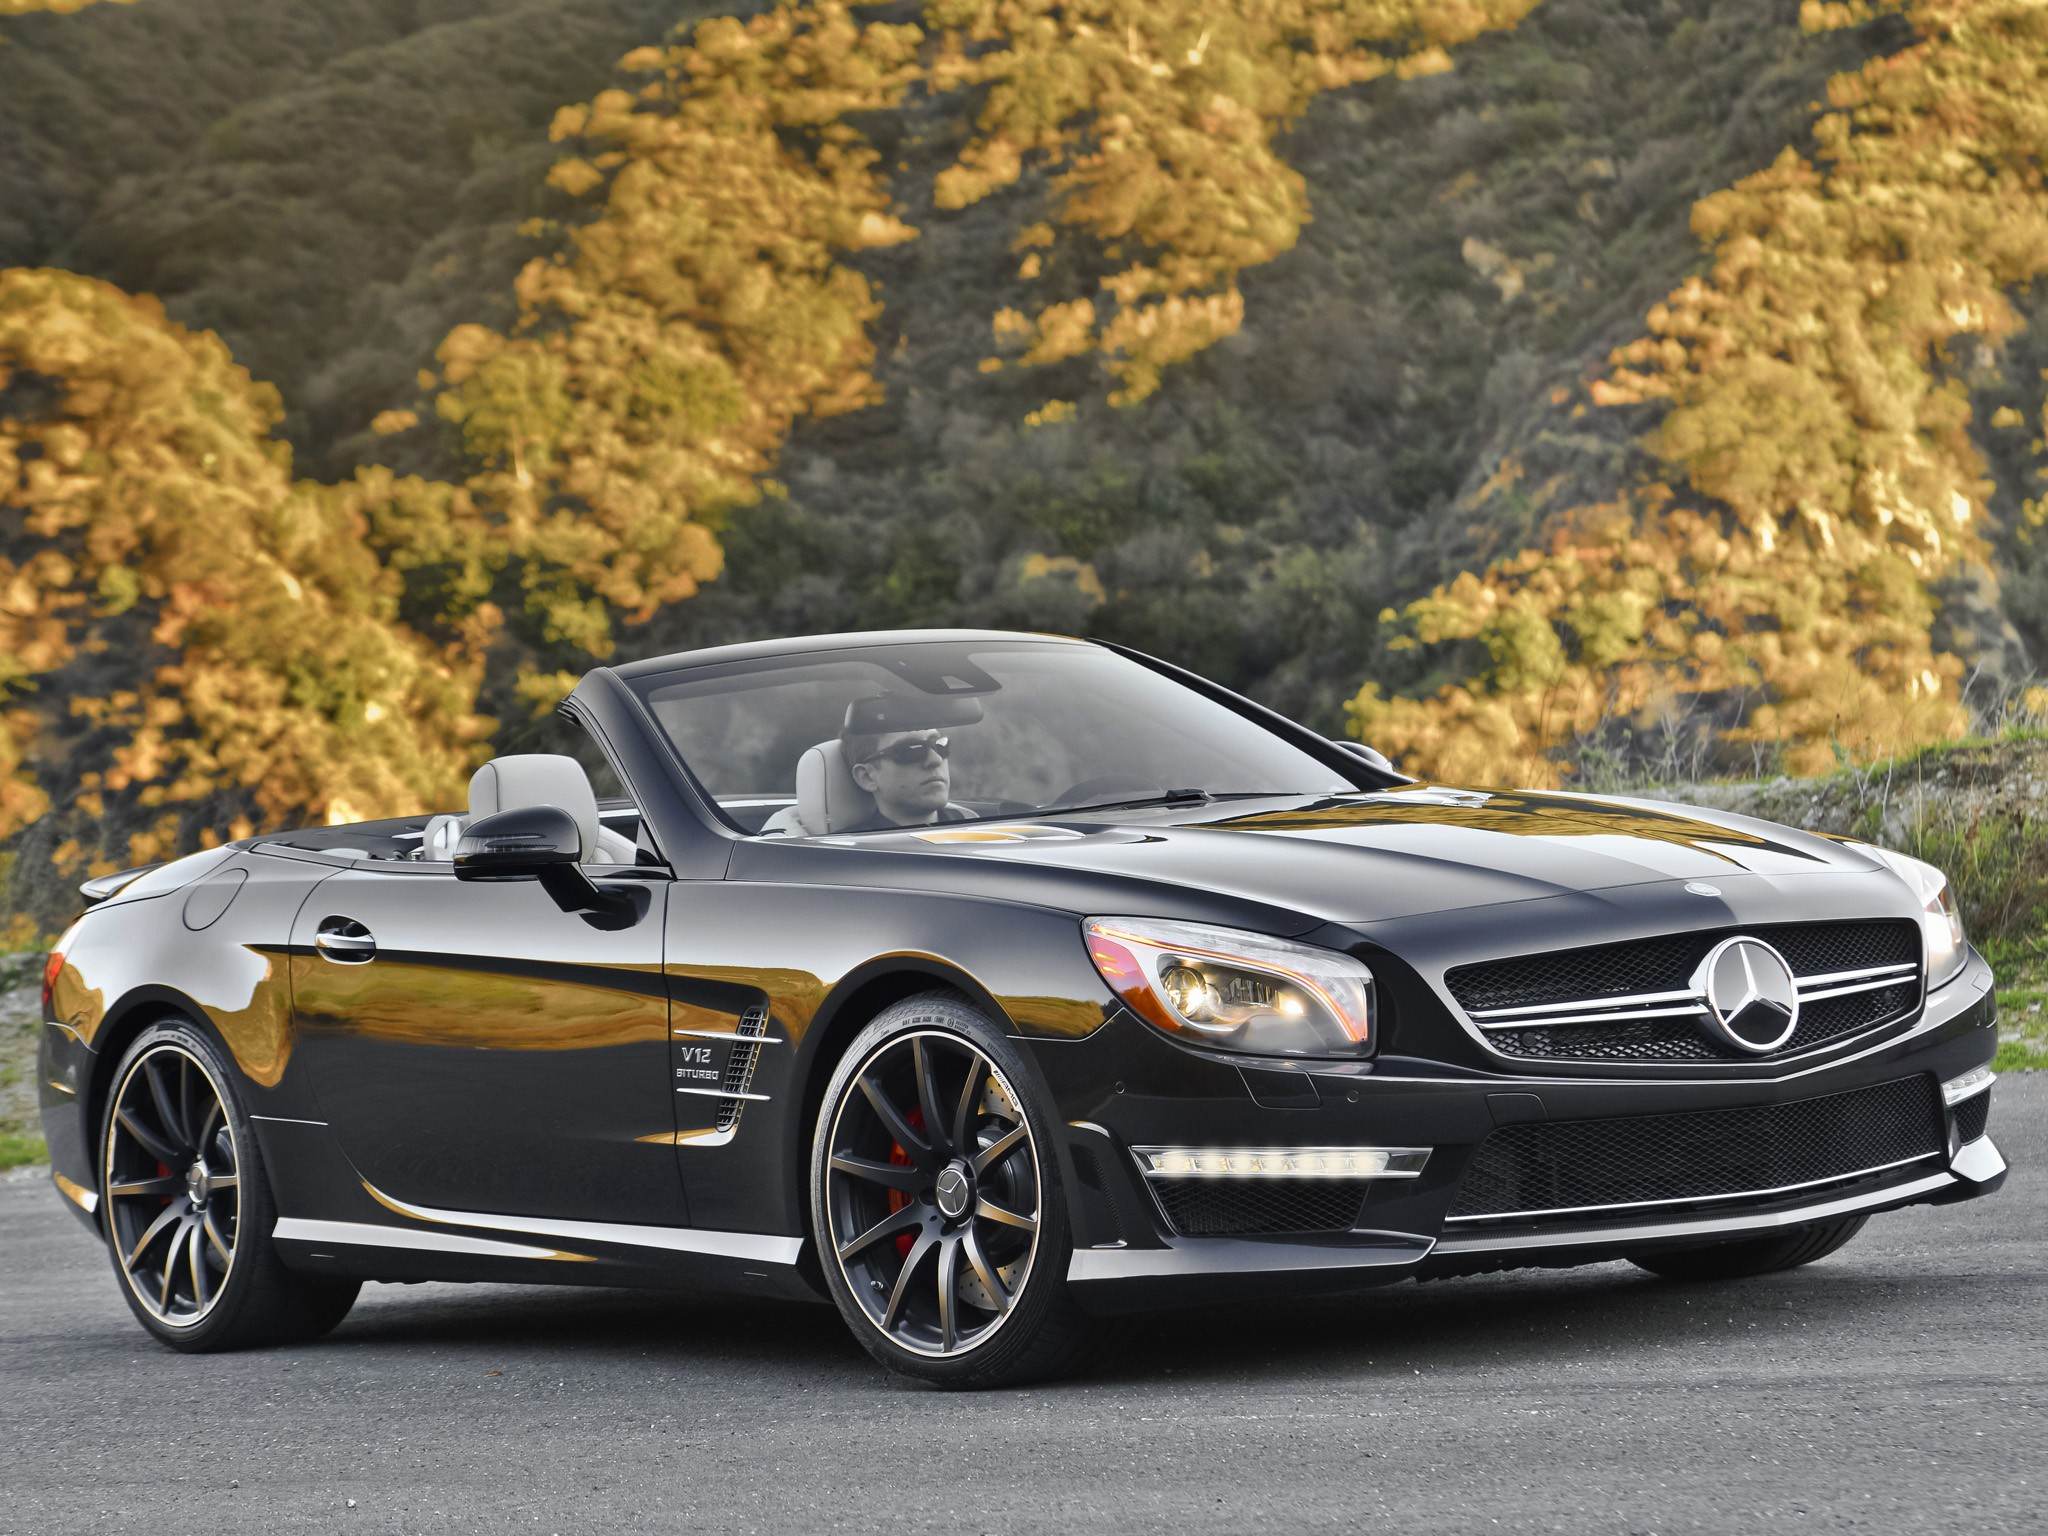 Mercedes benz sl 65 amg r231 specs 2012 2013 2014 for Mercedes benz sl550